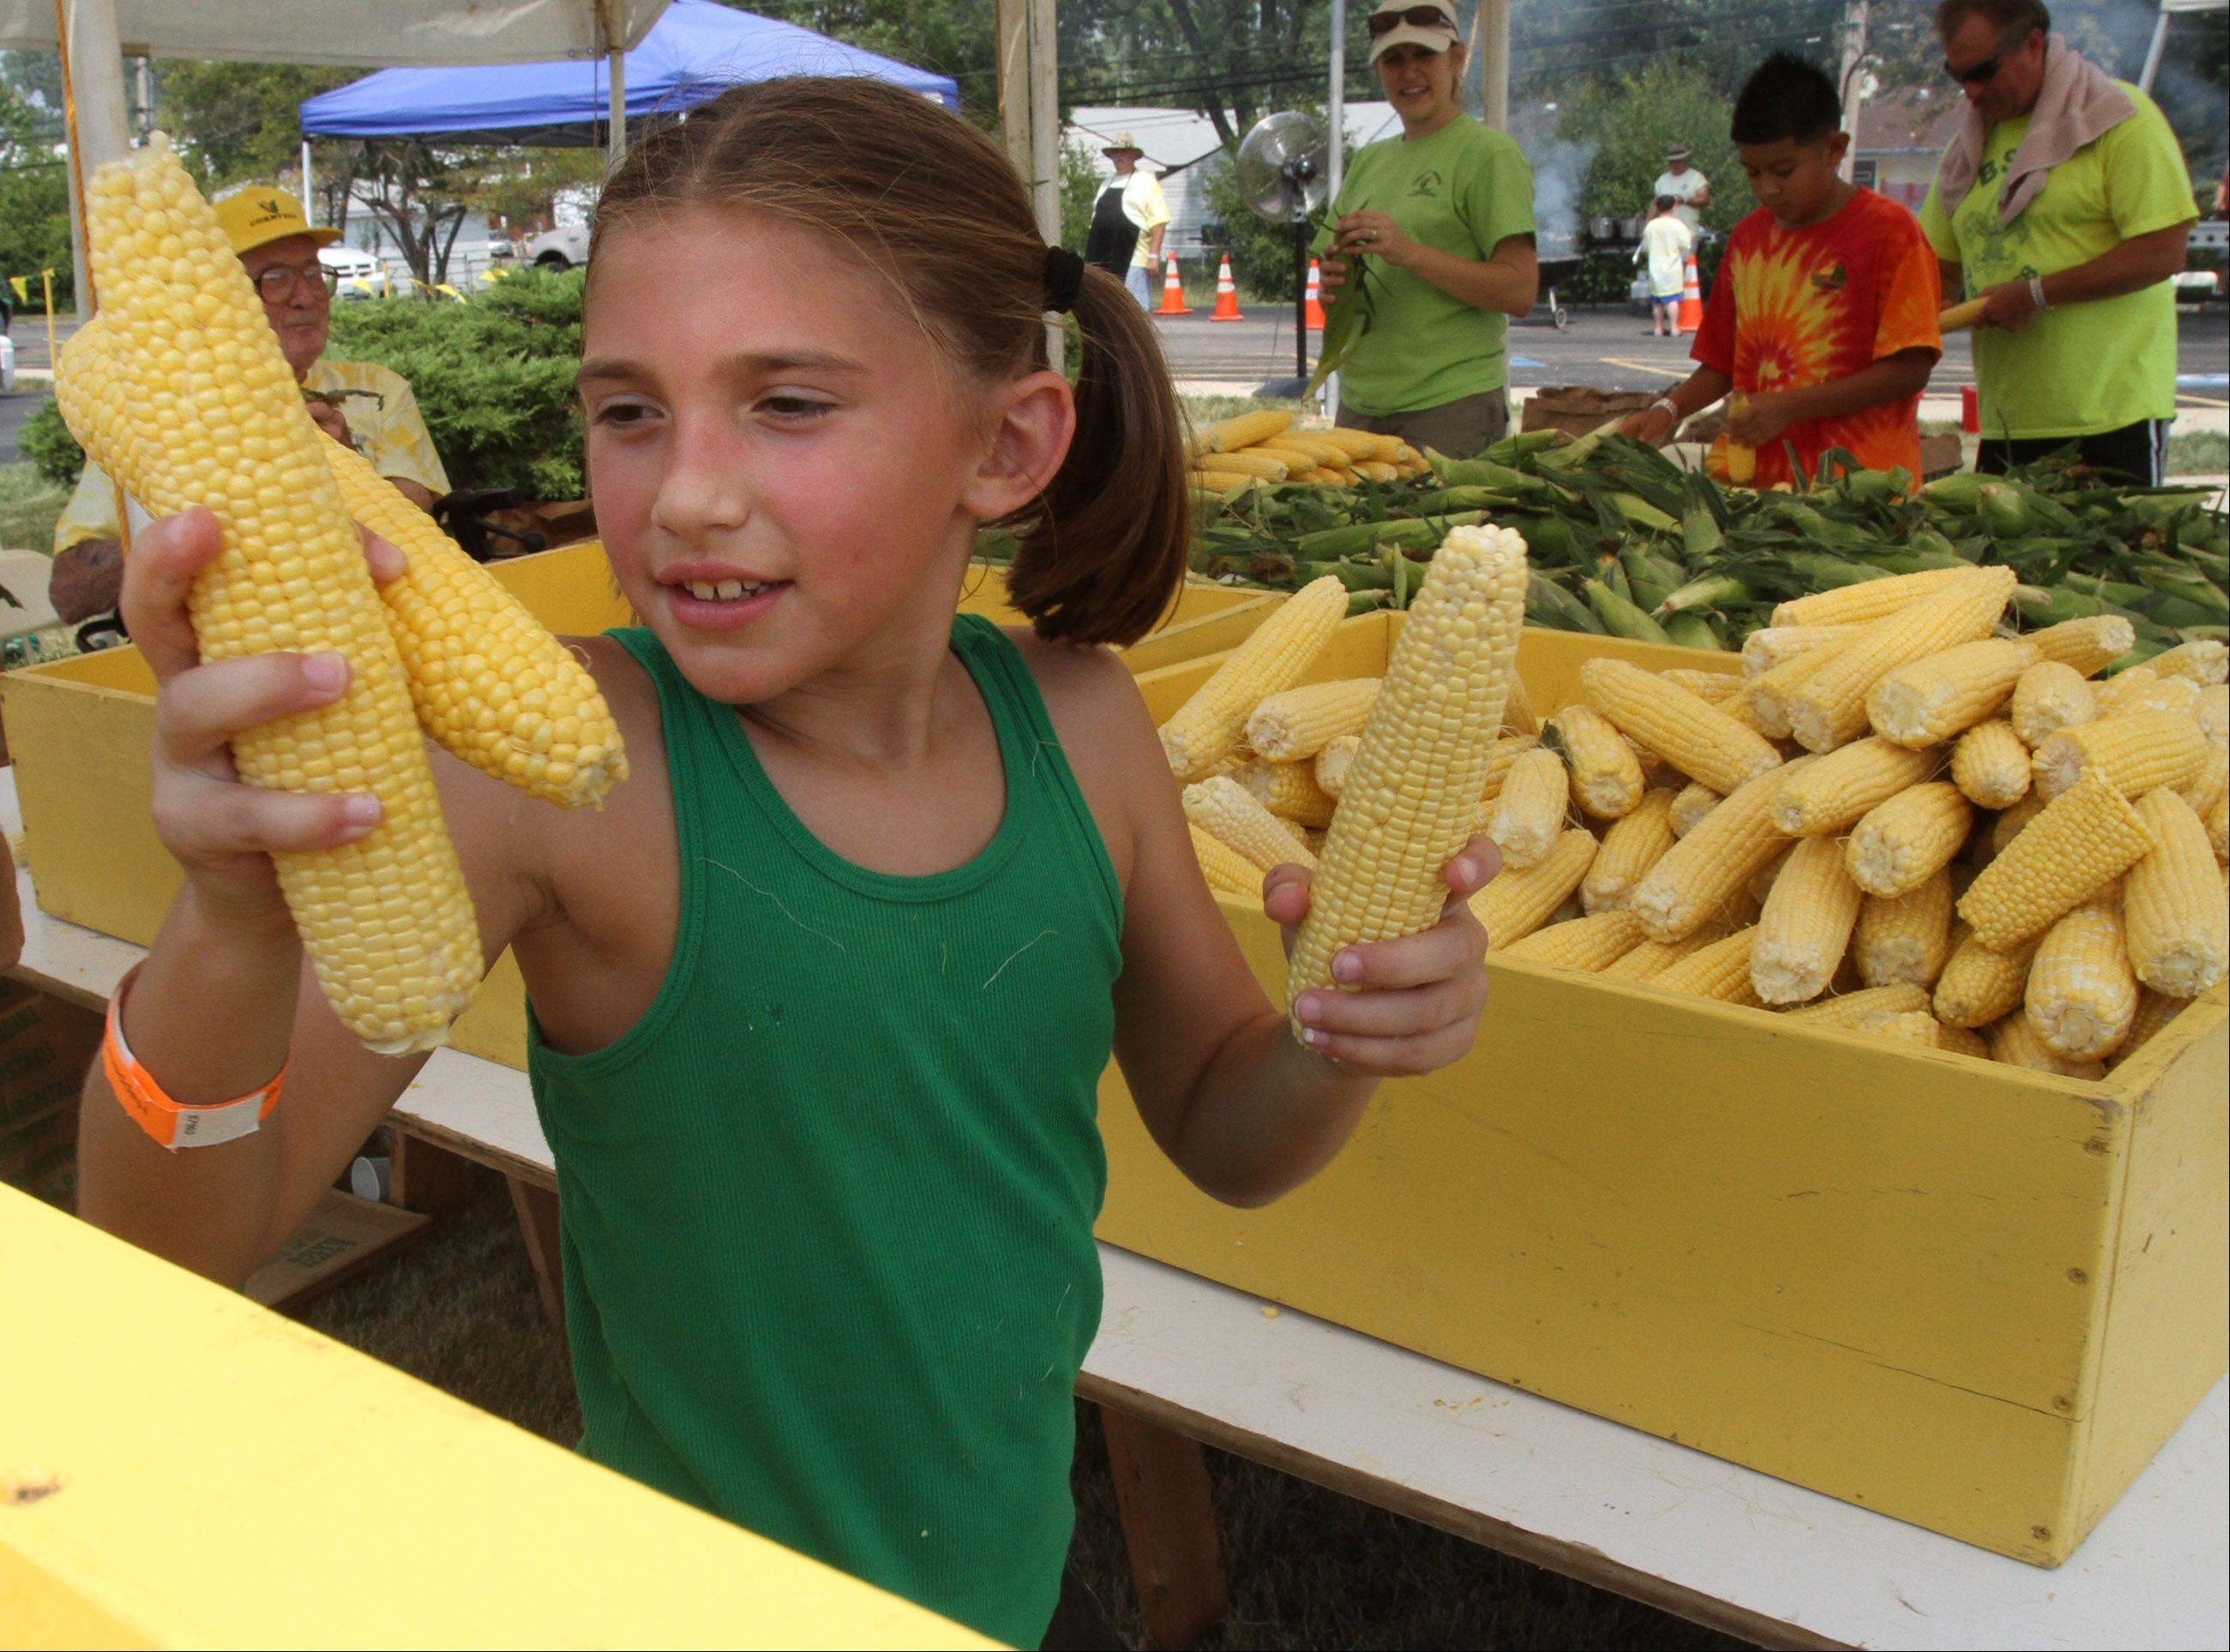 Shelby Paluch, 8, of Rolling Meadows, help husk and sort corn during Community Church of Rolling Meadows 56th Annual Cornfest Saturday.